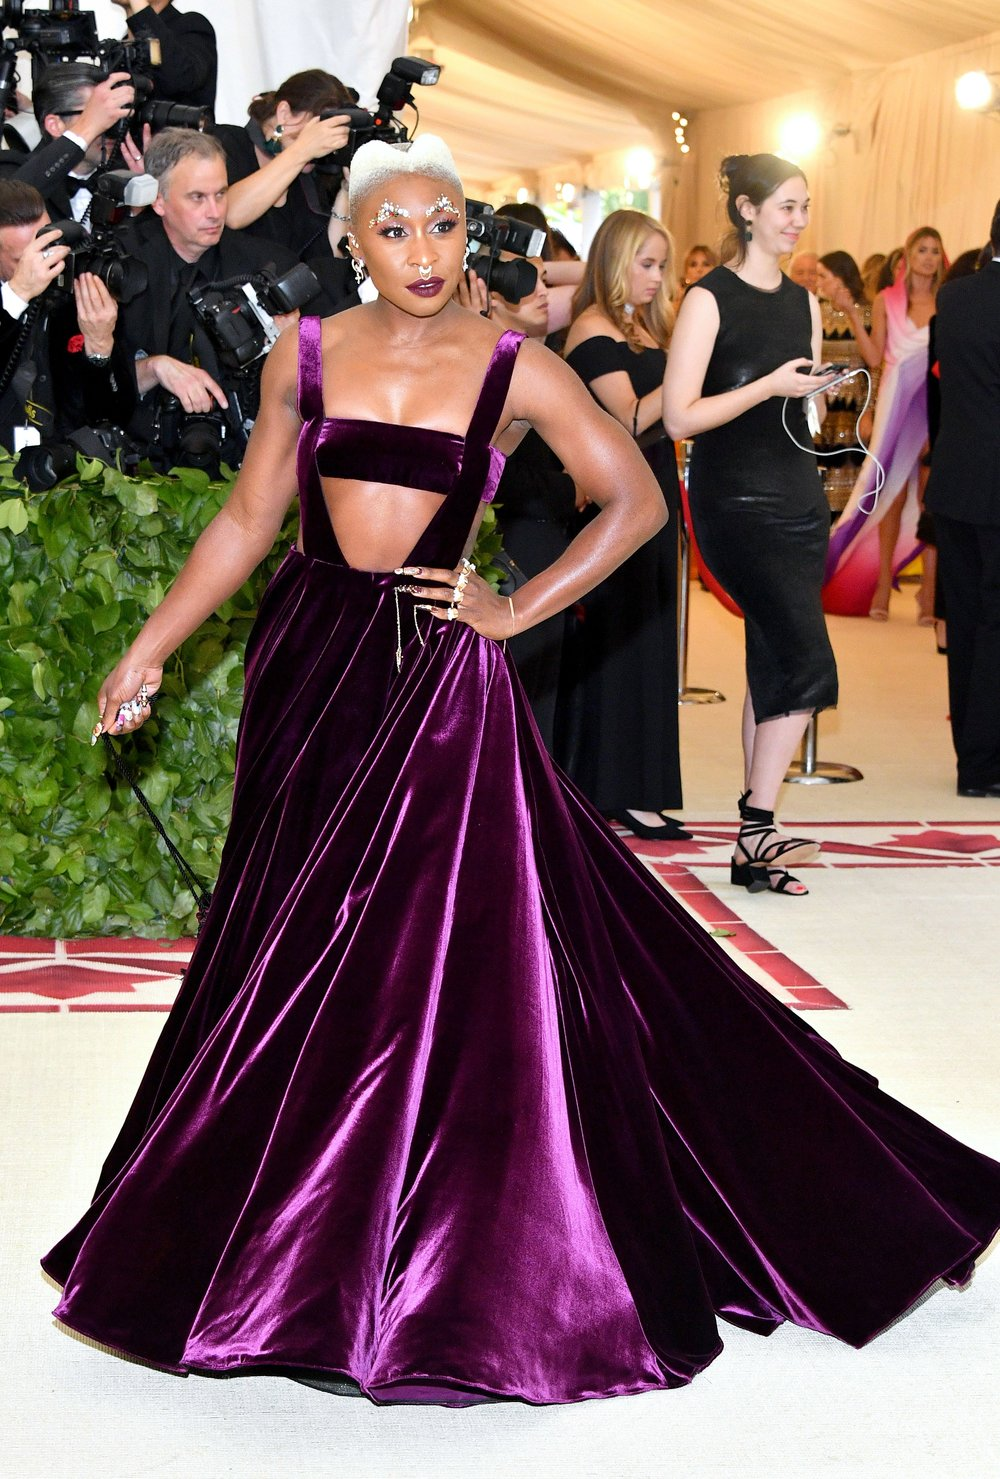 CYNTHIA ERIVO MET GALA 2018 RED CARPET.jpg